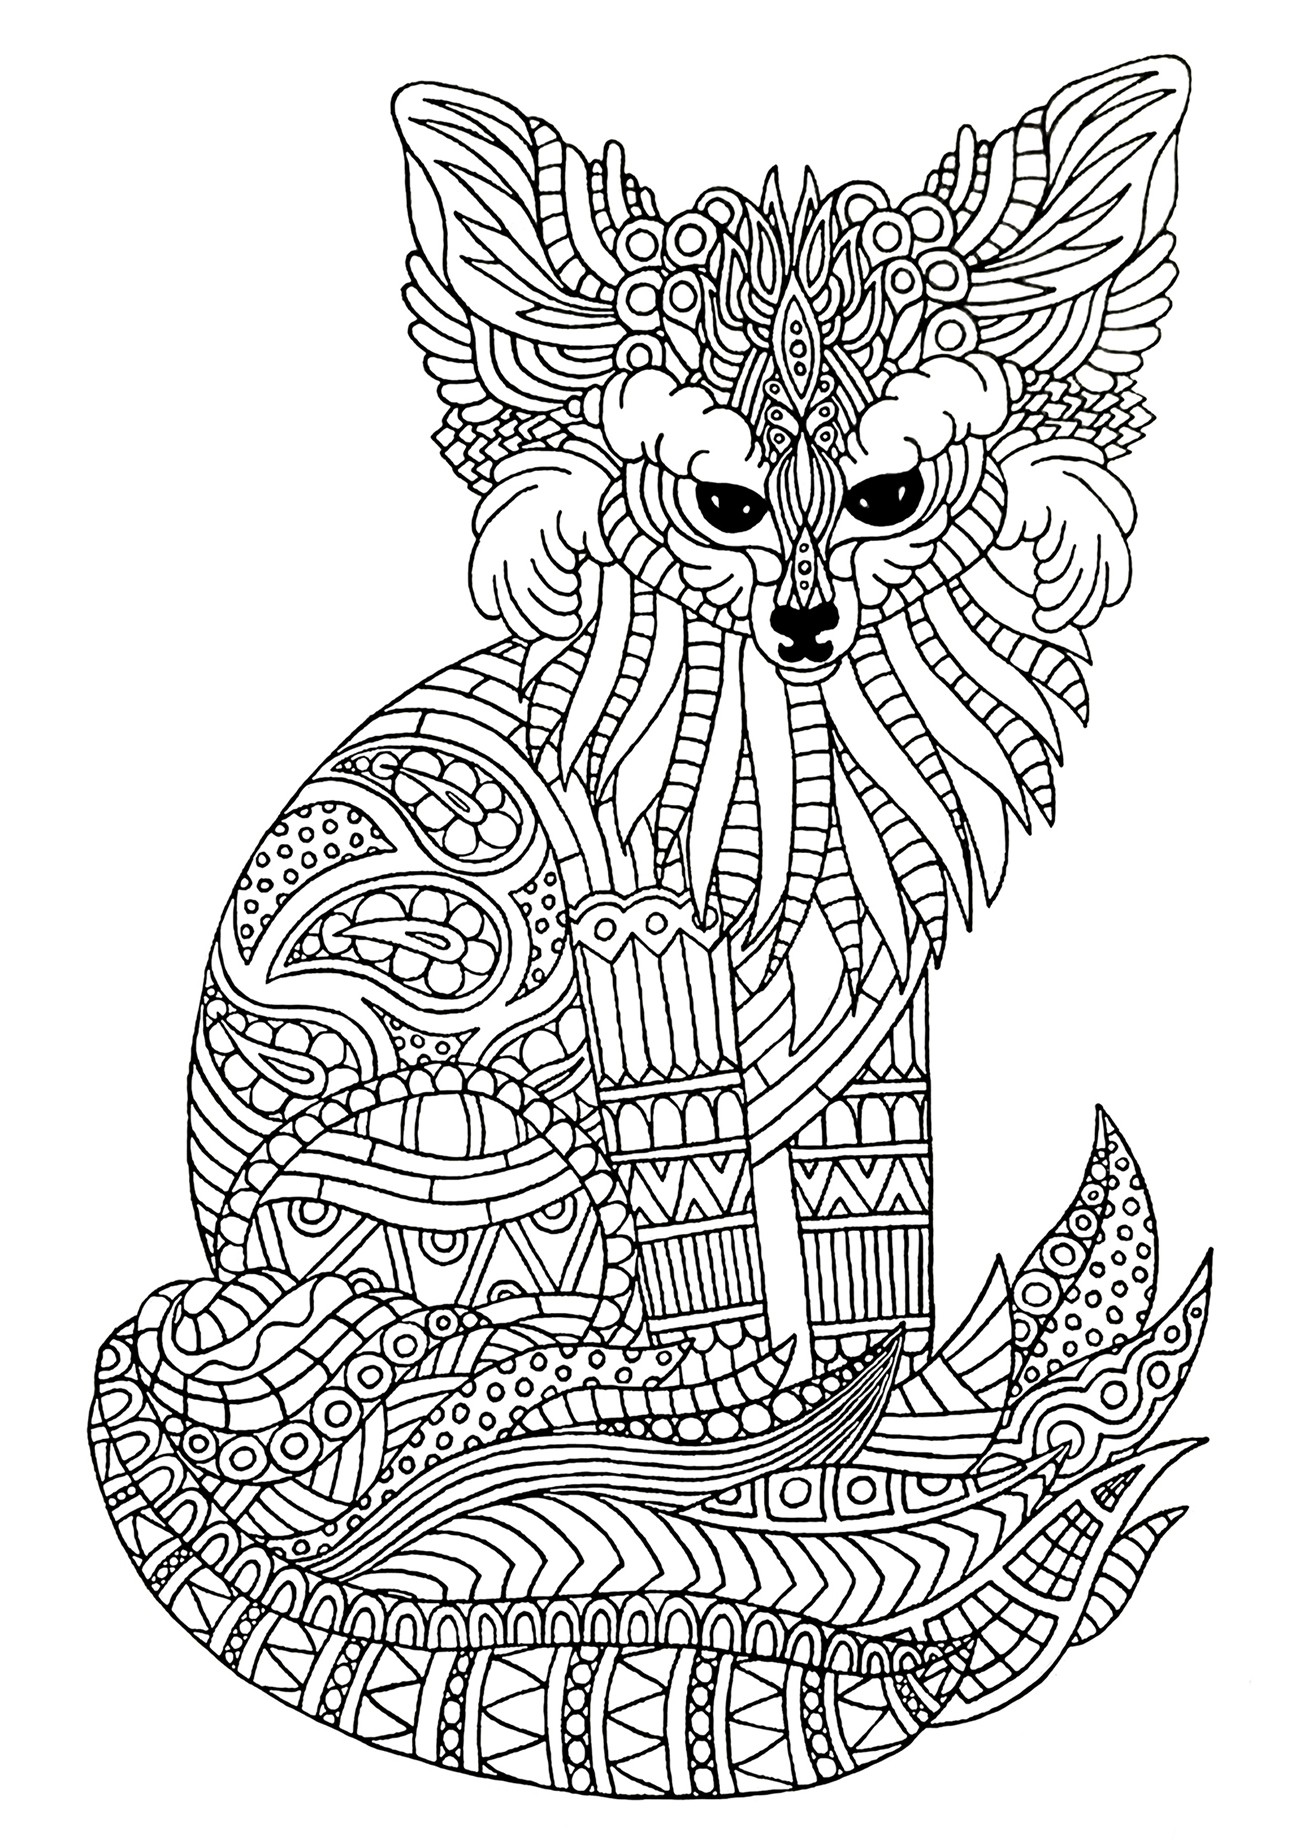 Funny free Fox coloring page to print and color